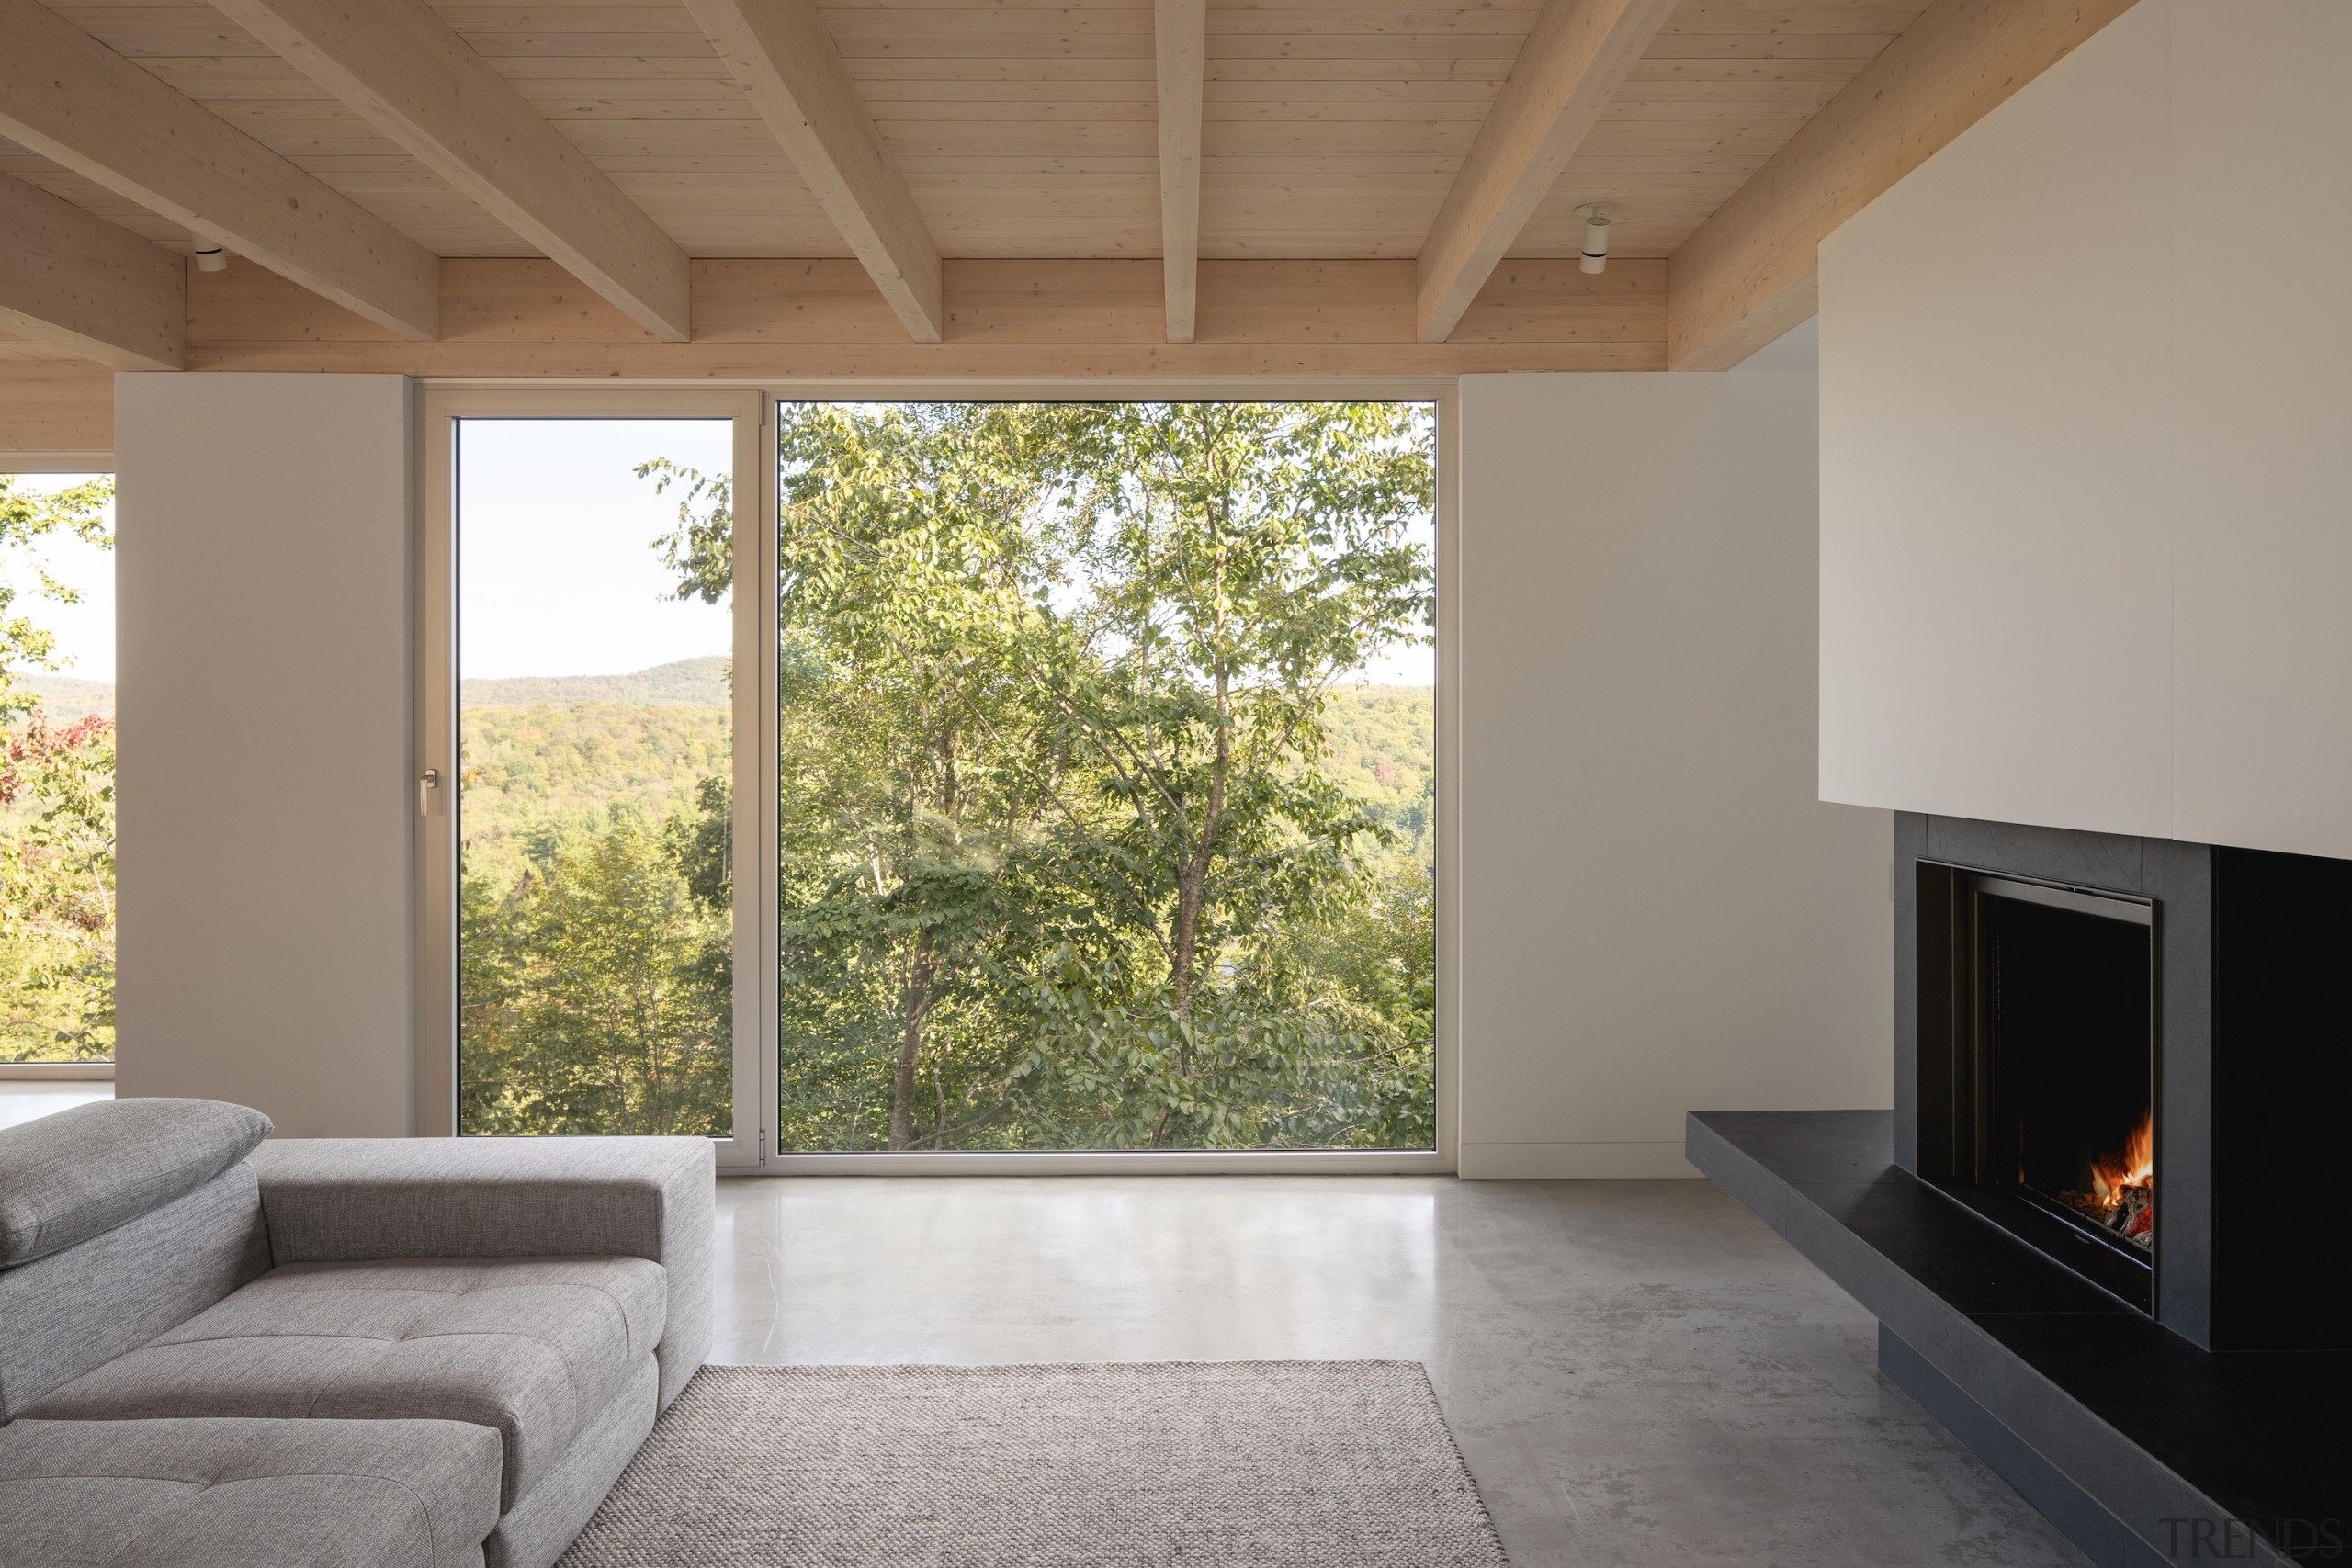 Clean-lined interiors take back seat to the home's